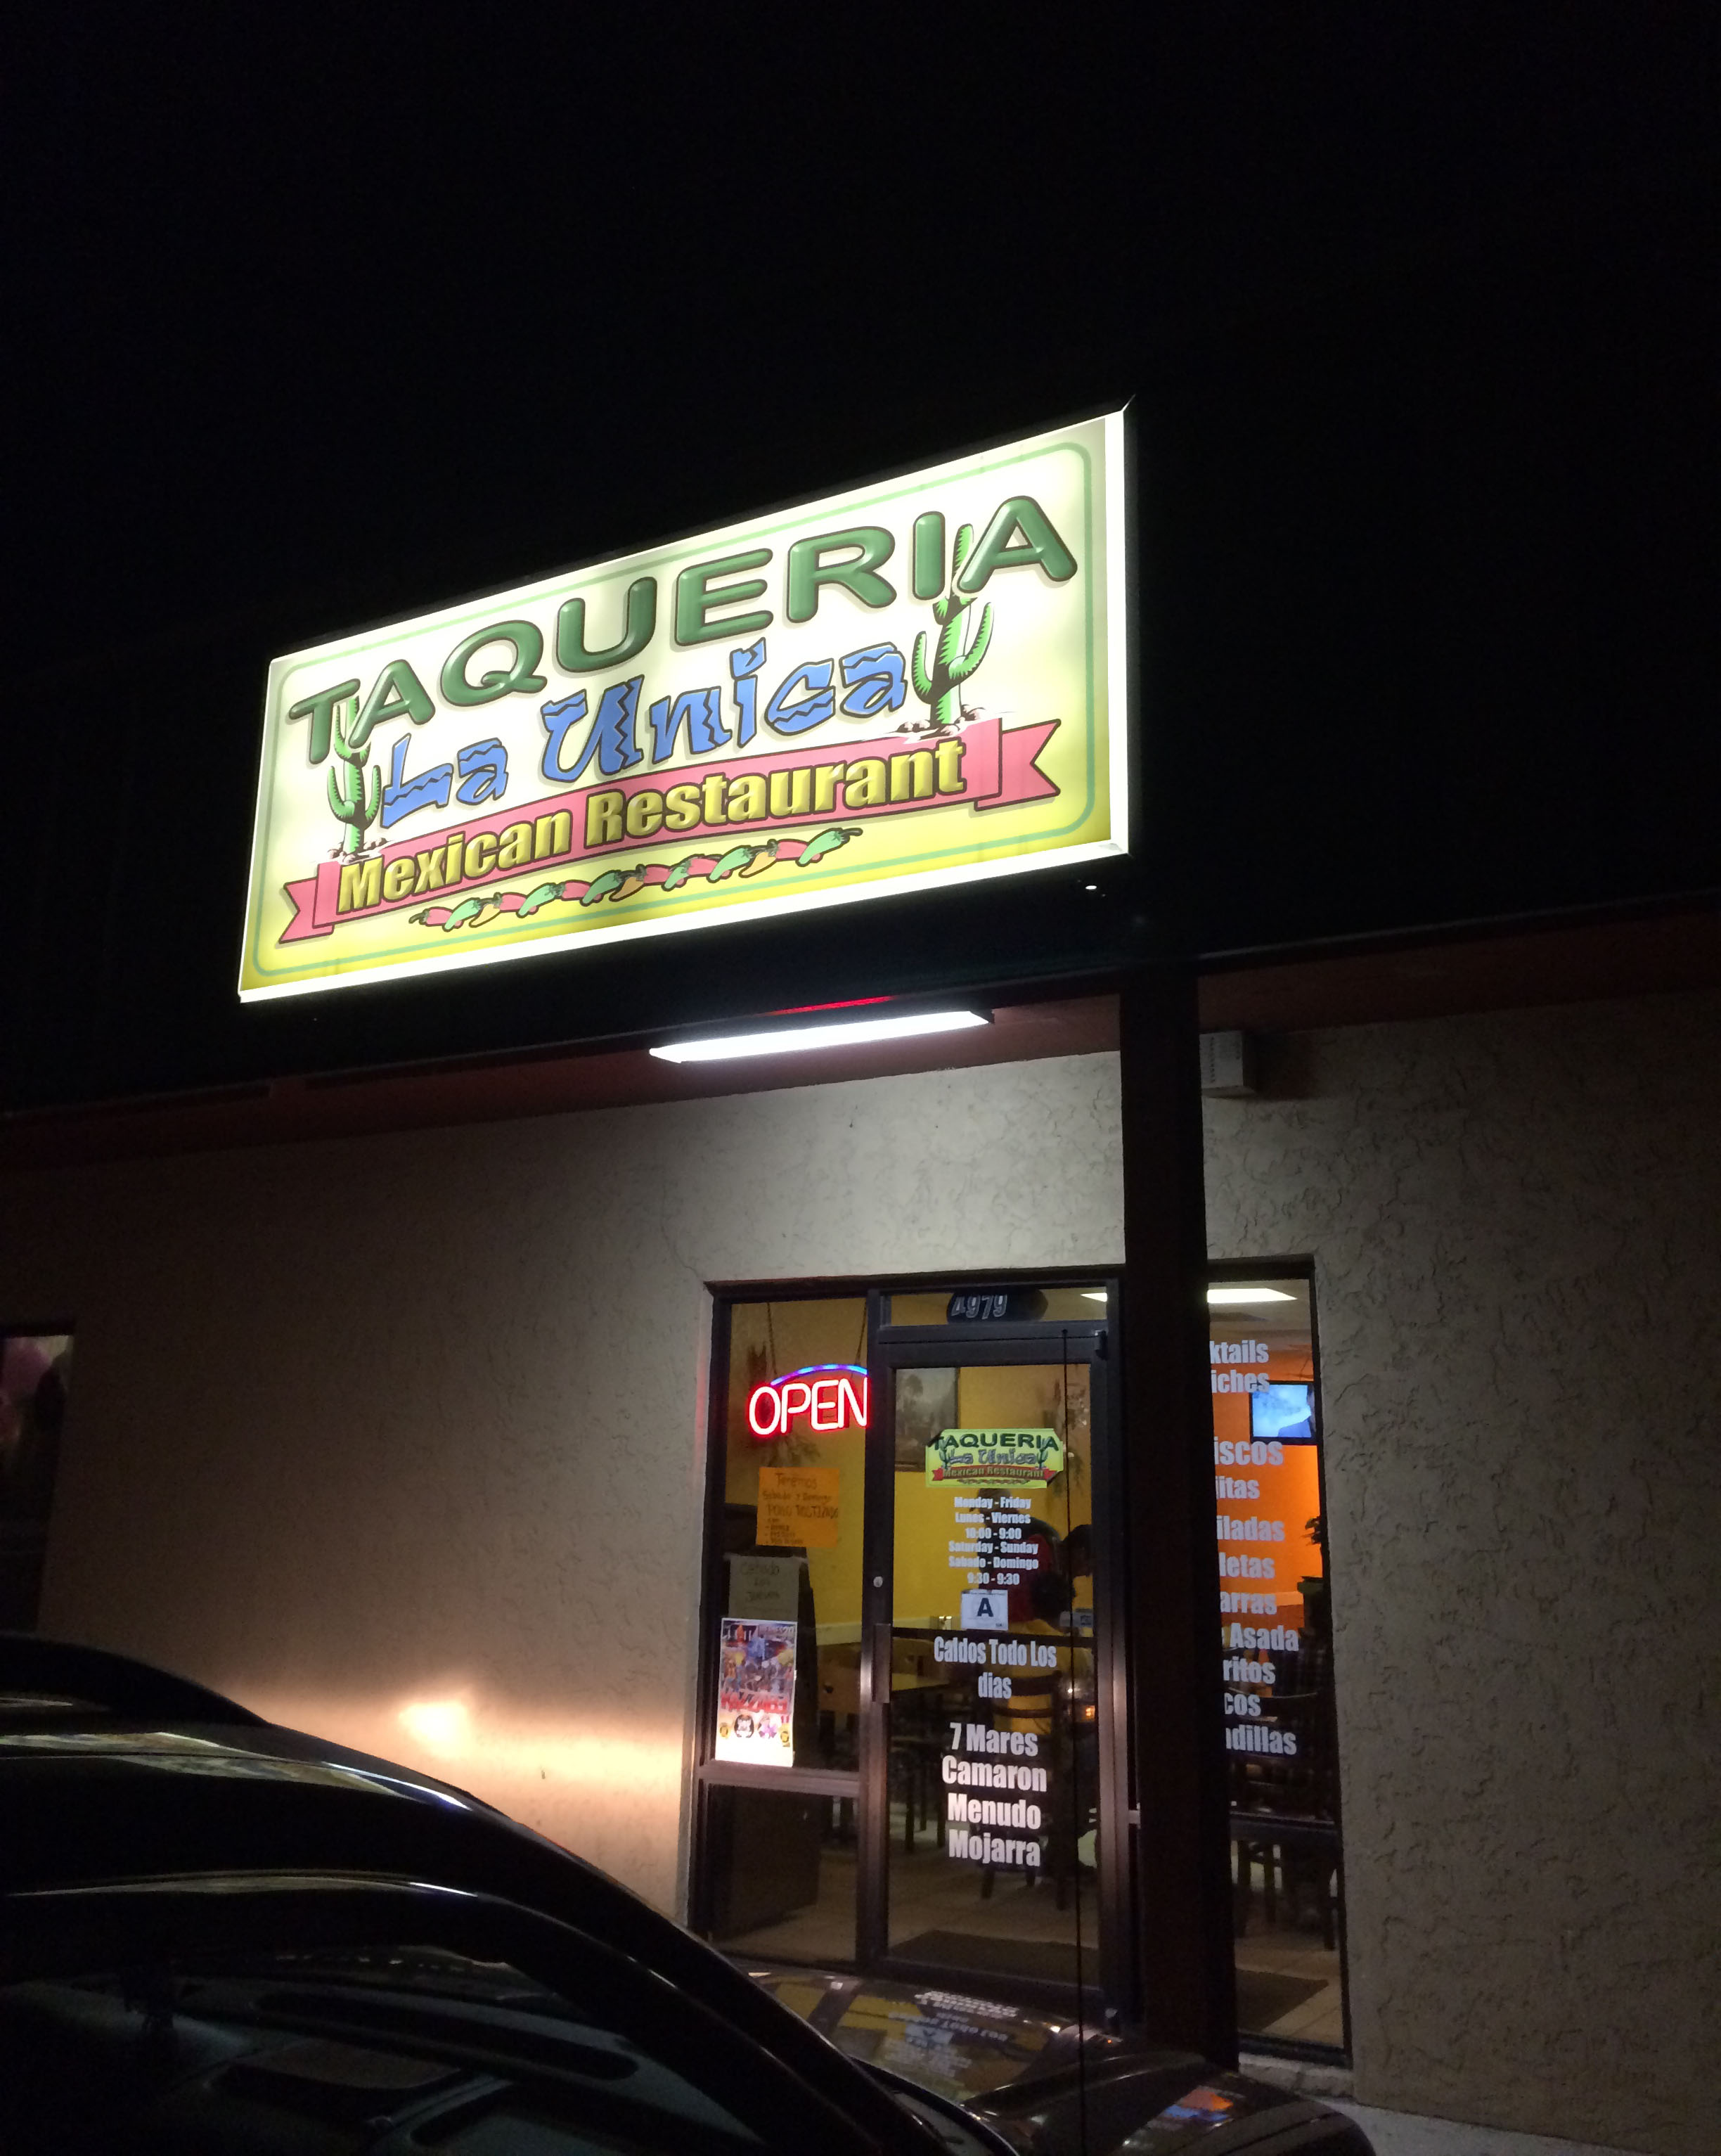 The entrance to Taqueria La Unican in Myrtle Beach.